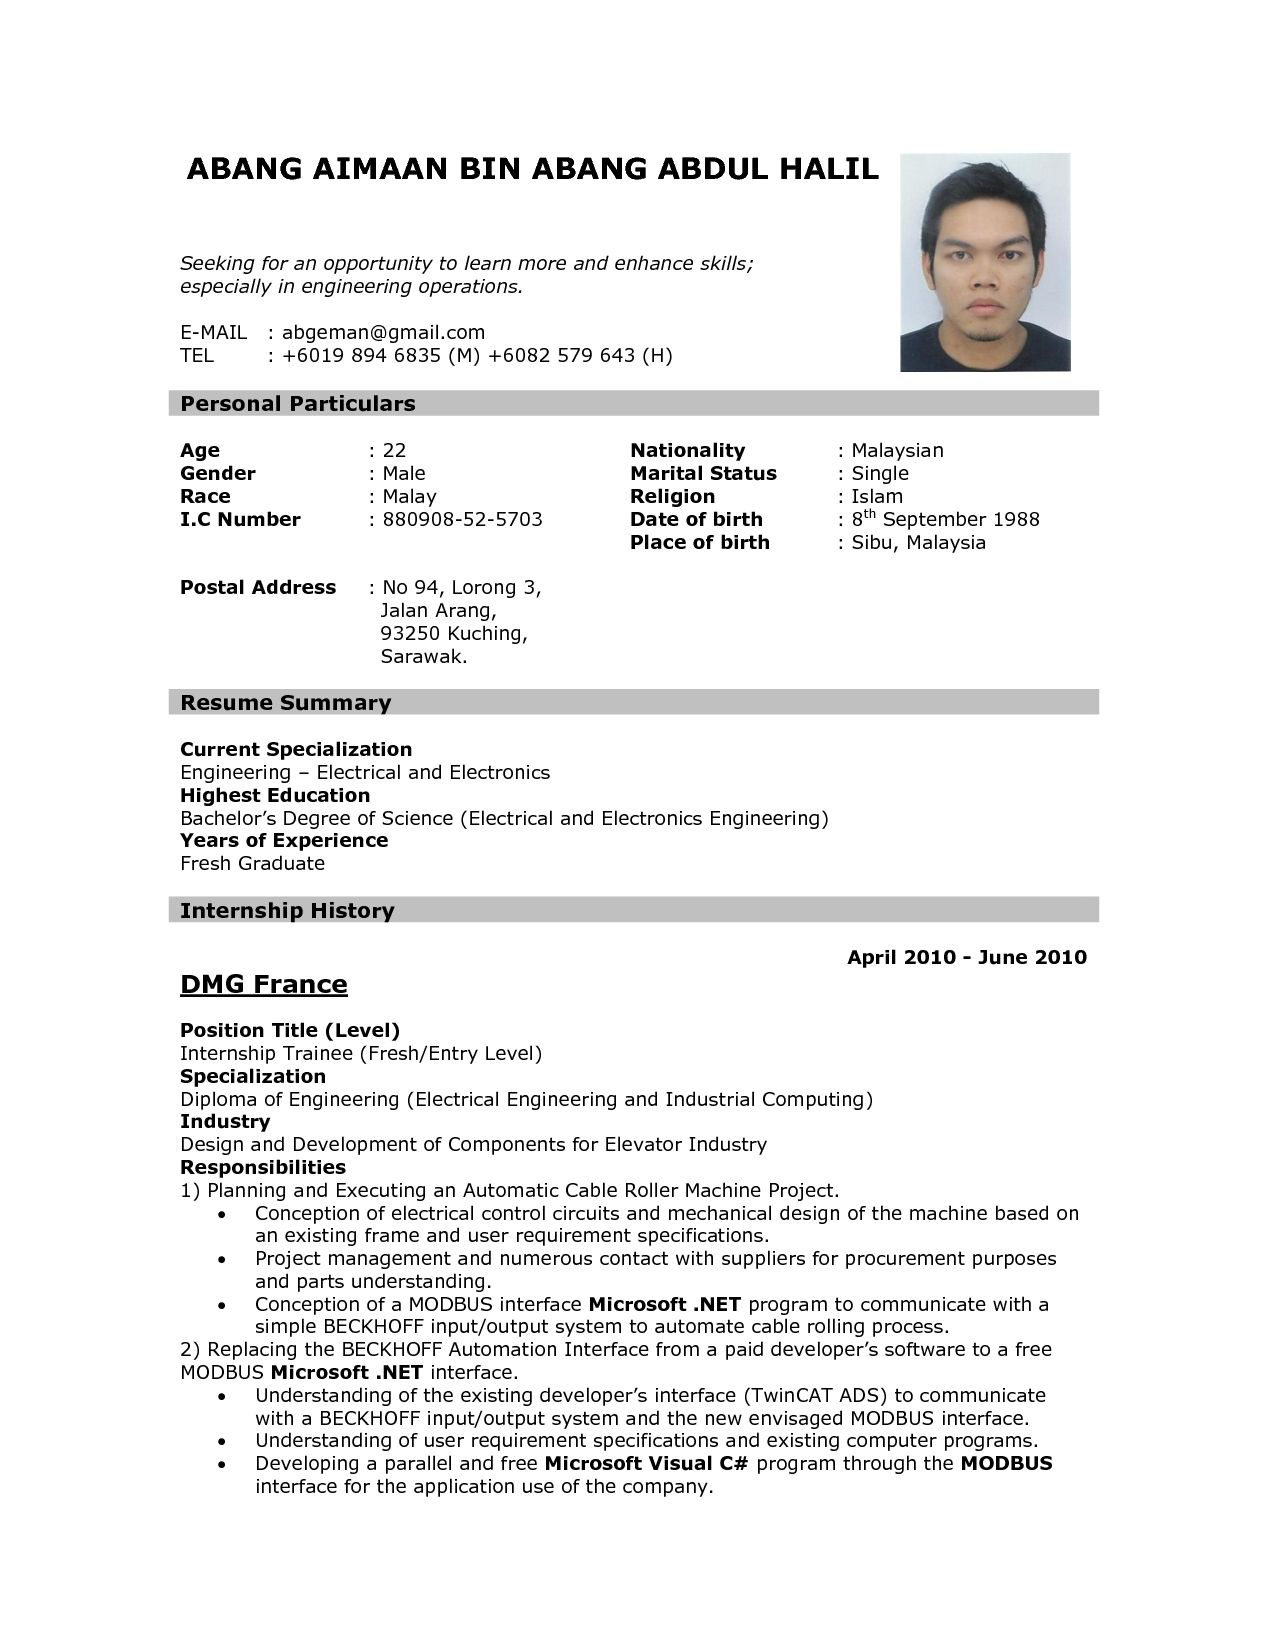 Resume Resume Sampl format of resume for job application to download data sample the applying